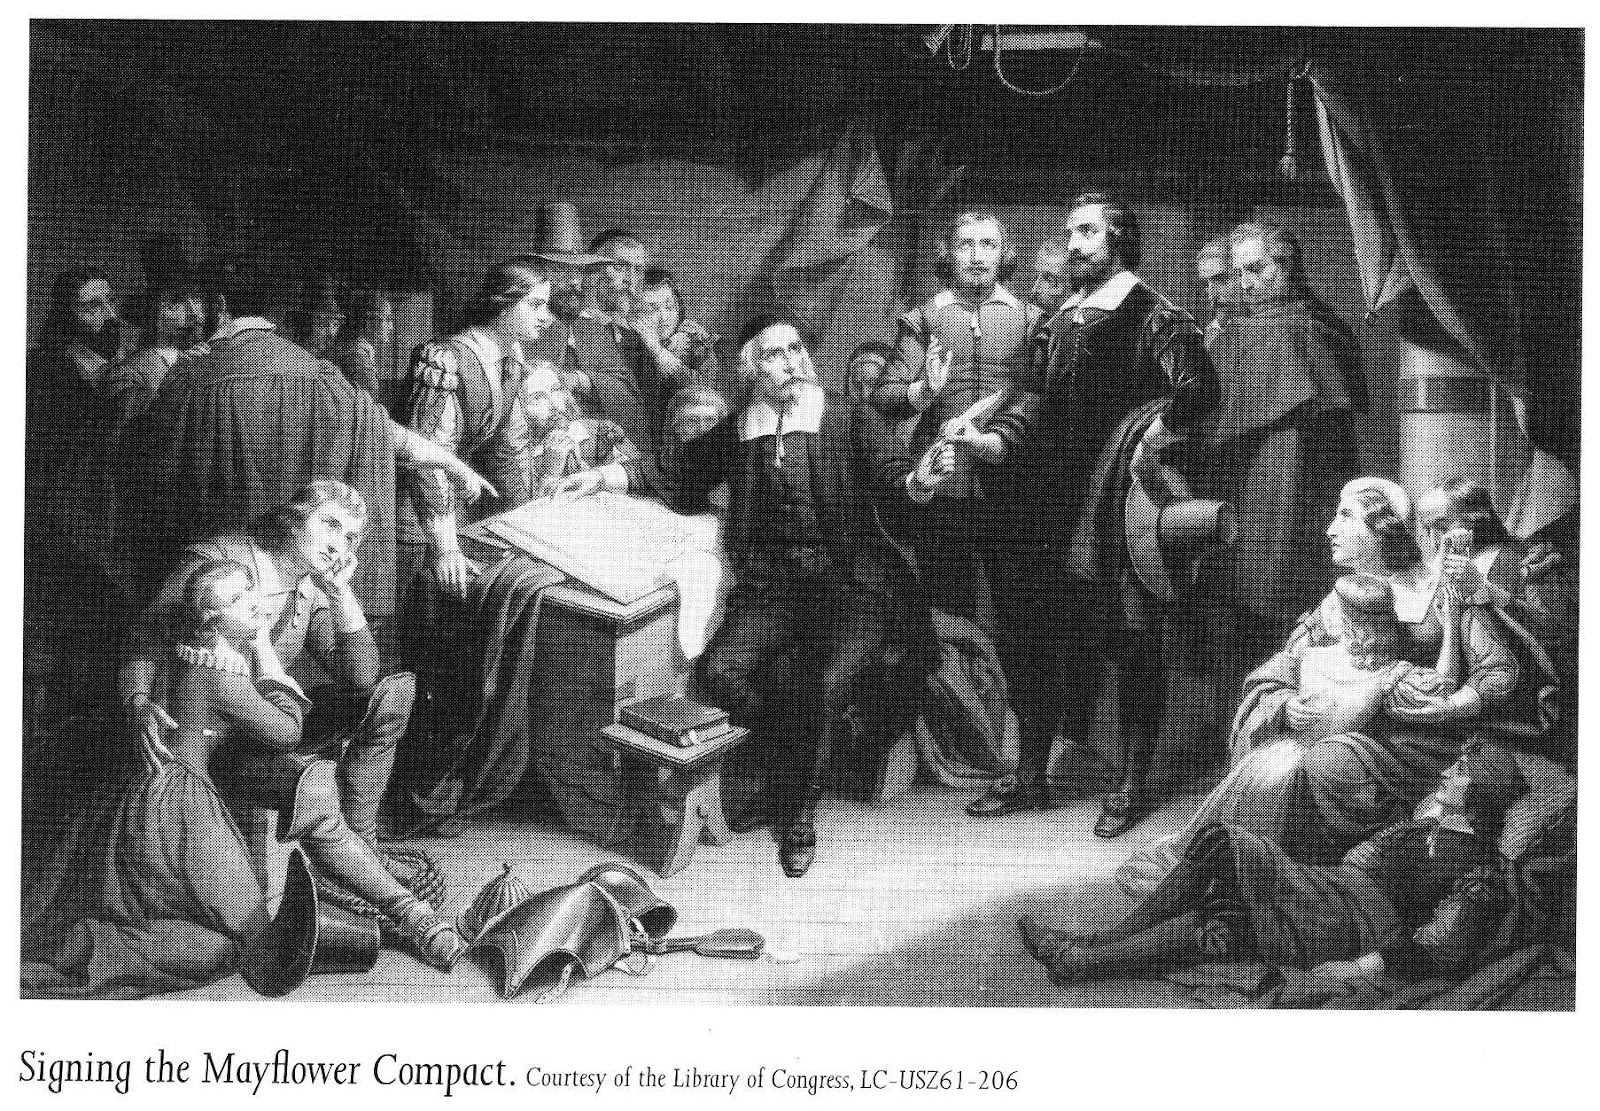 essay on the mayflower compact This society awards scholarships to students through an essay contest the  california mayflower society offers three awards each year to qualified  applicants:.